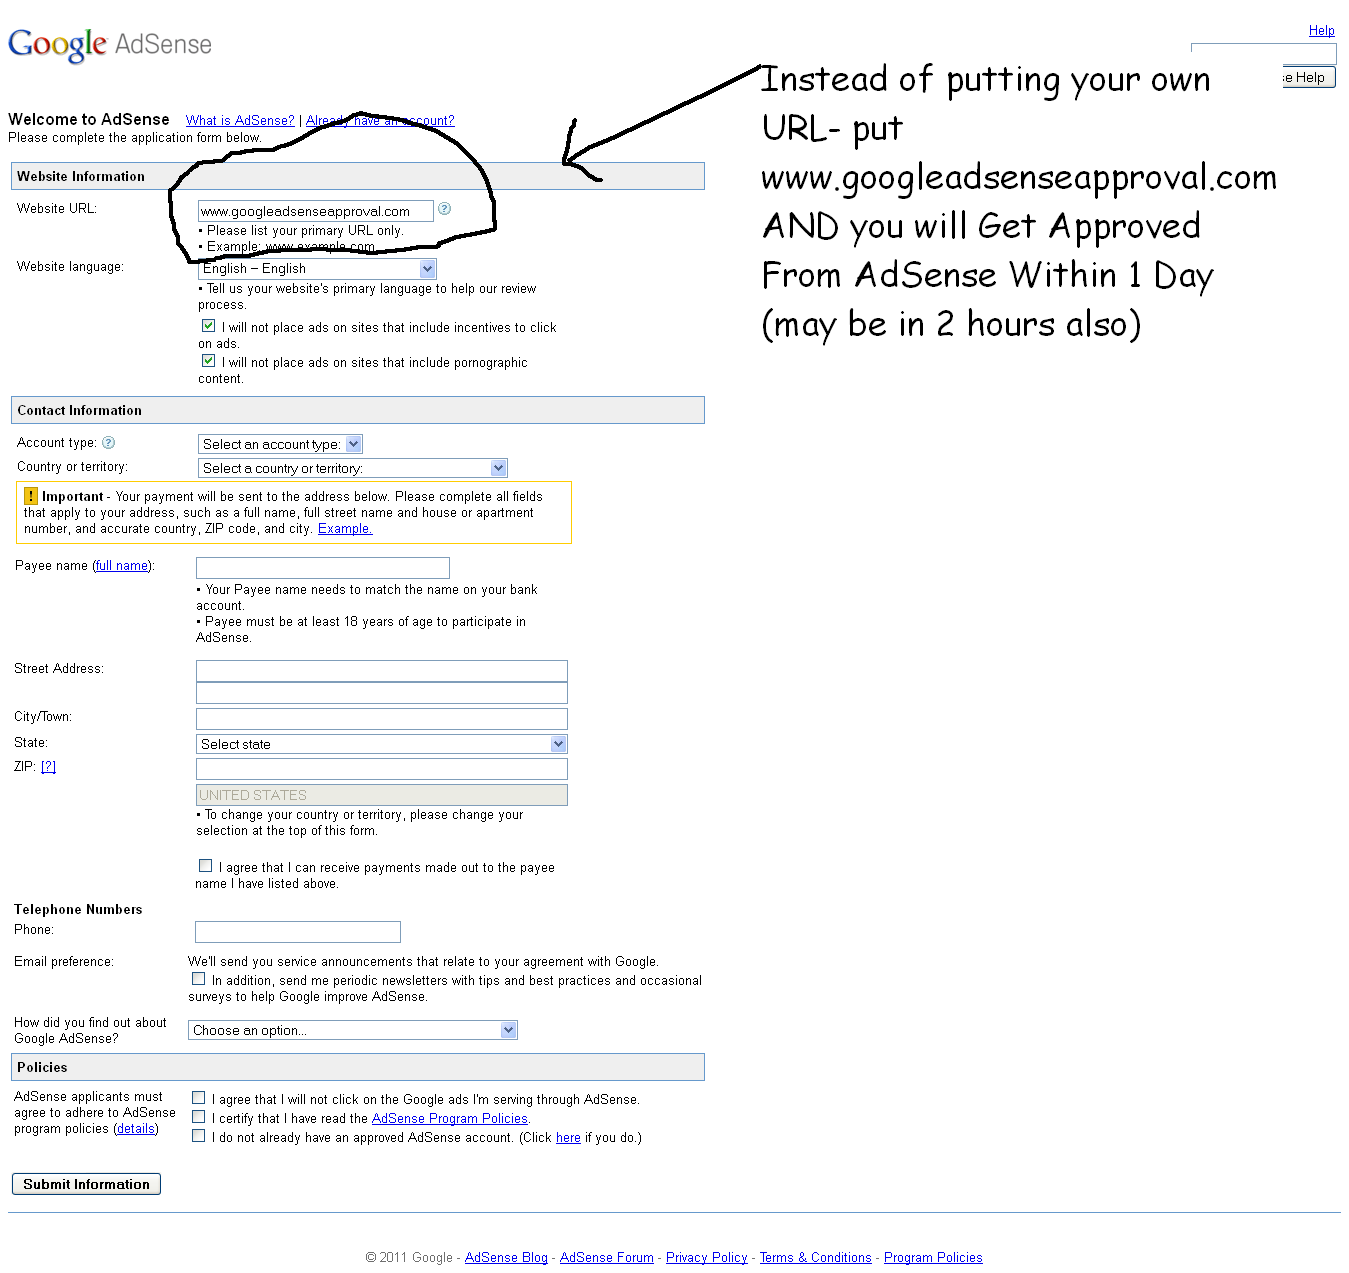 how to make a google adsense account without website